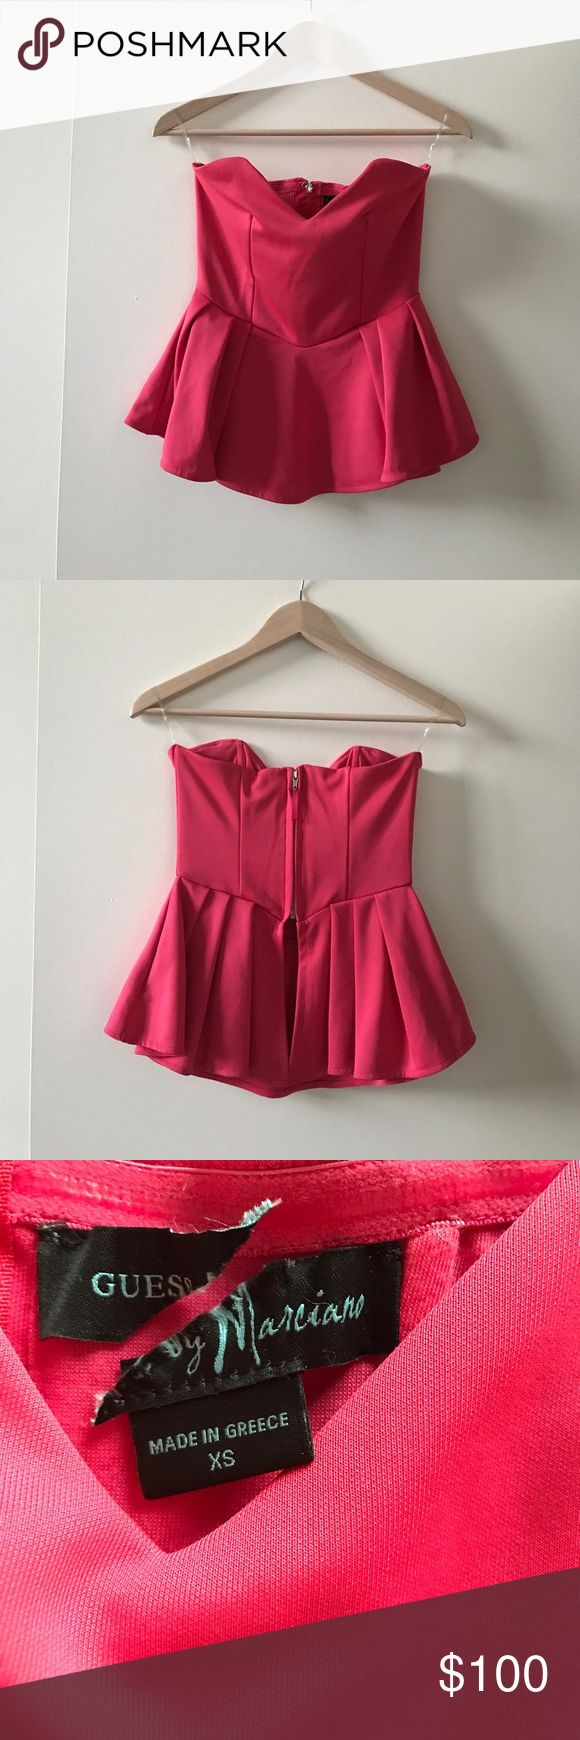 SALE! Marciano pink peplum top NWOT size XS can also fit a S. Gorgeous classy flirty Marciano Tops